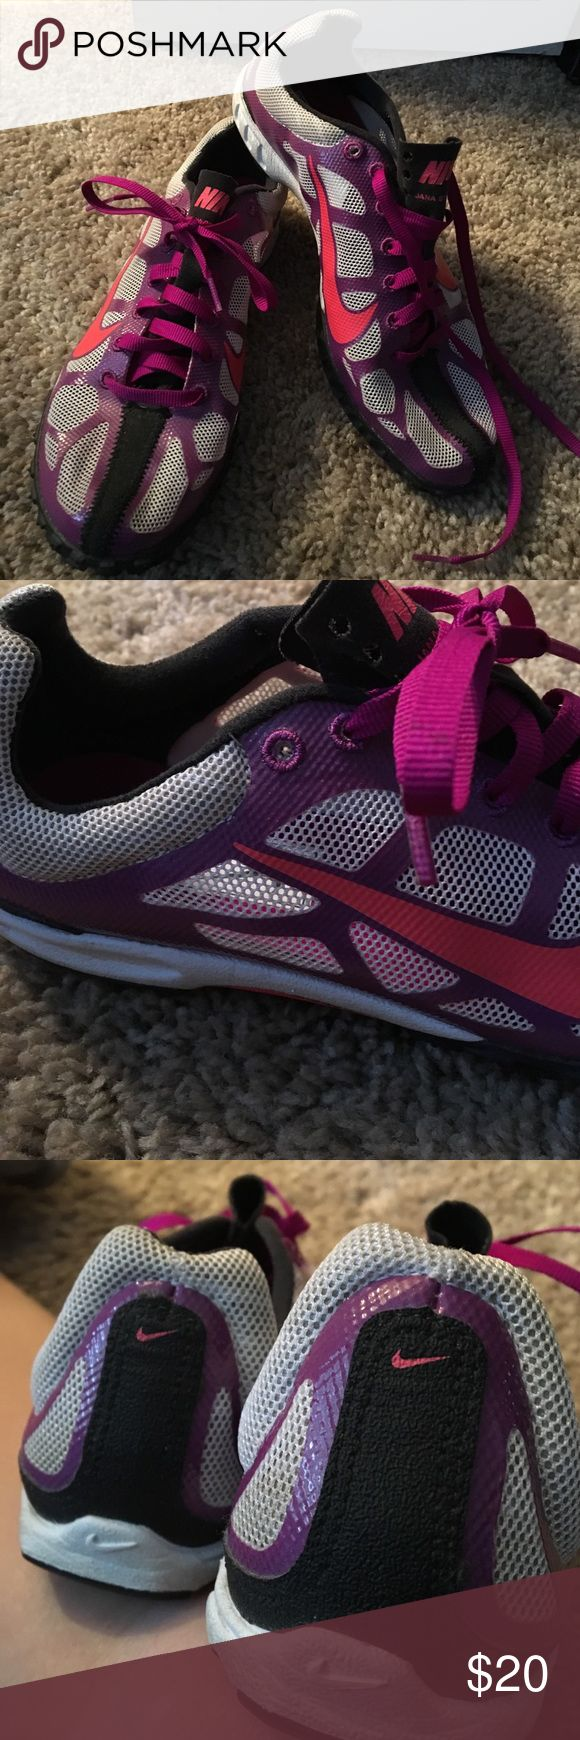 Nike Track and Field Shoes Size 5 Woman's shoe Track and Field Nike shoes see pictures ... very light weight excellent condition Nike Shoes Athletic Shoes